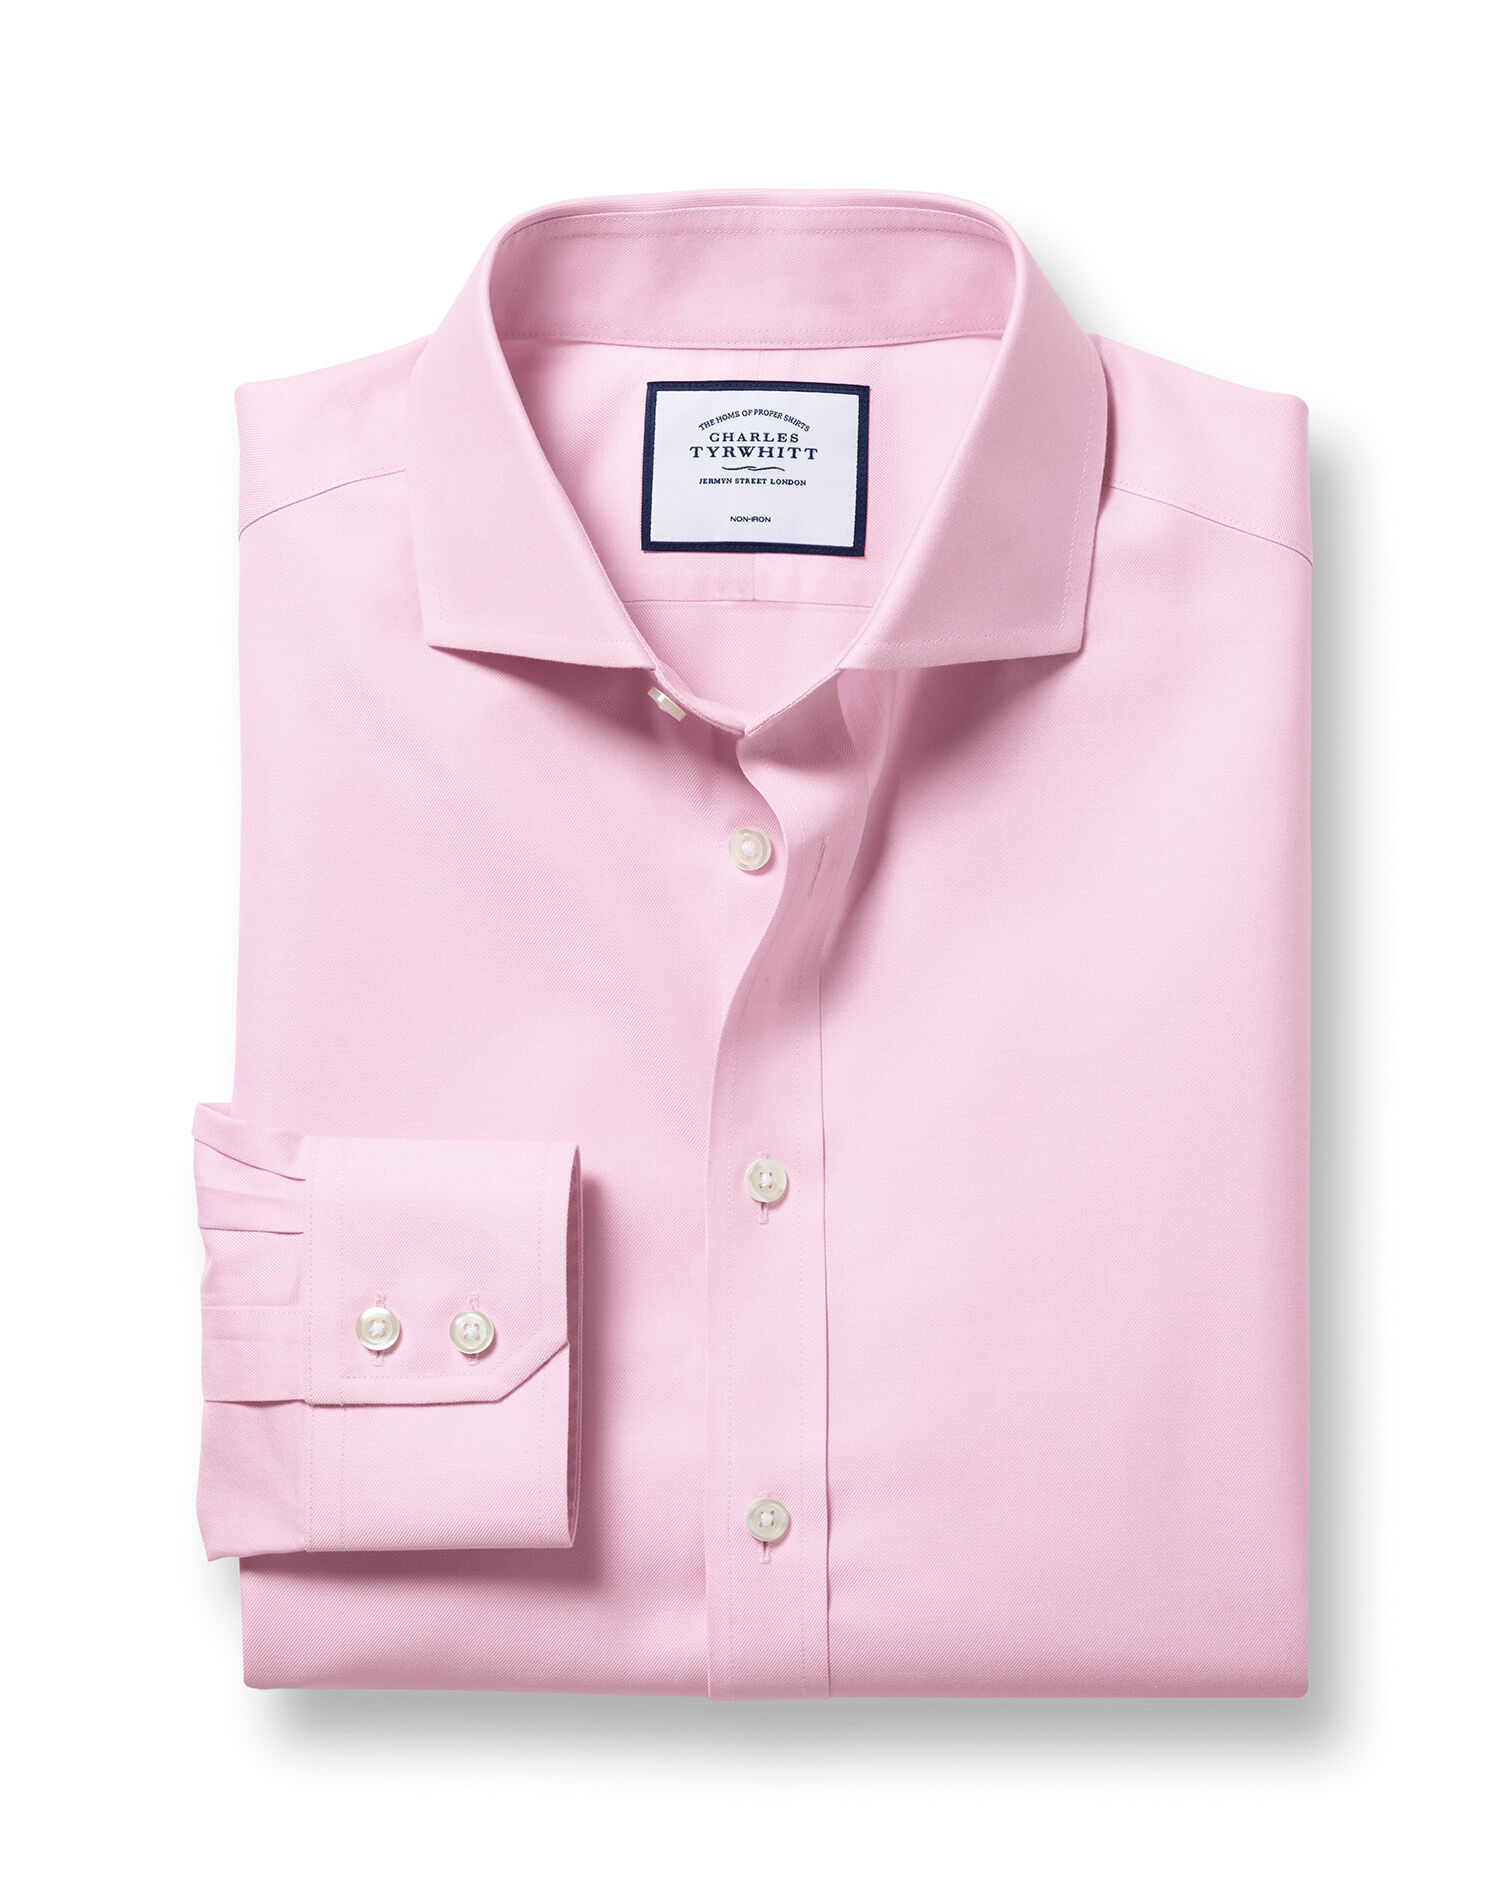 Slim Fit Cutaway Non-Iron Twill Pink Cotton Formal Shirt Single Cuff Size 16.5/36 by Charles Tyrwhit